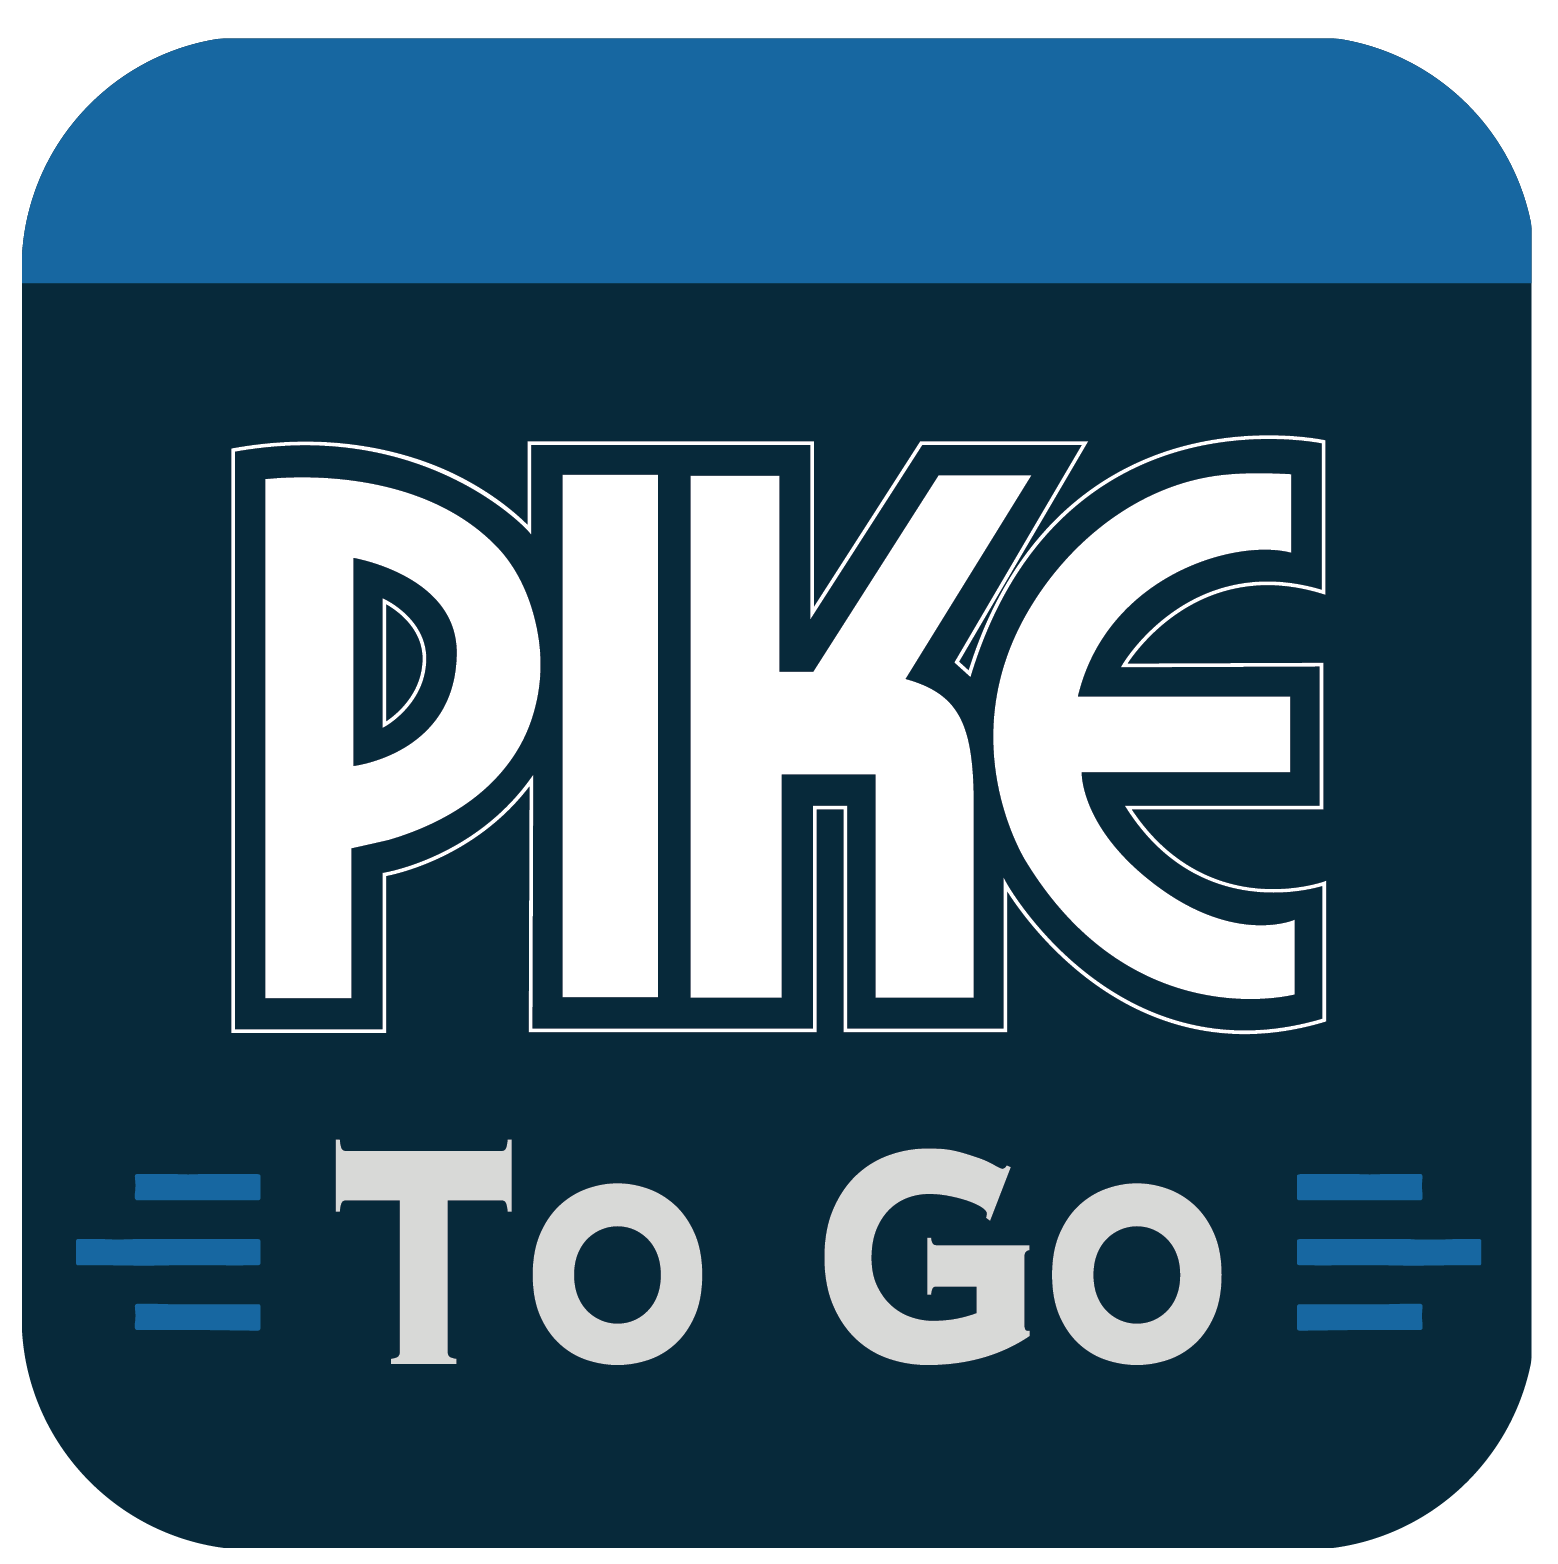 pike to go logo